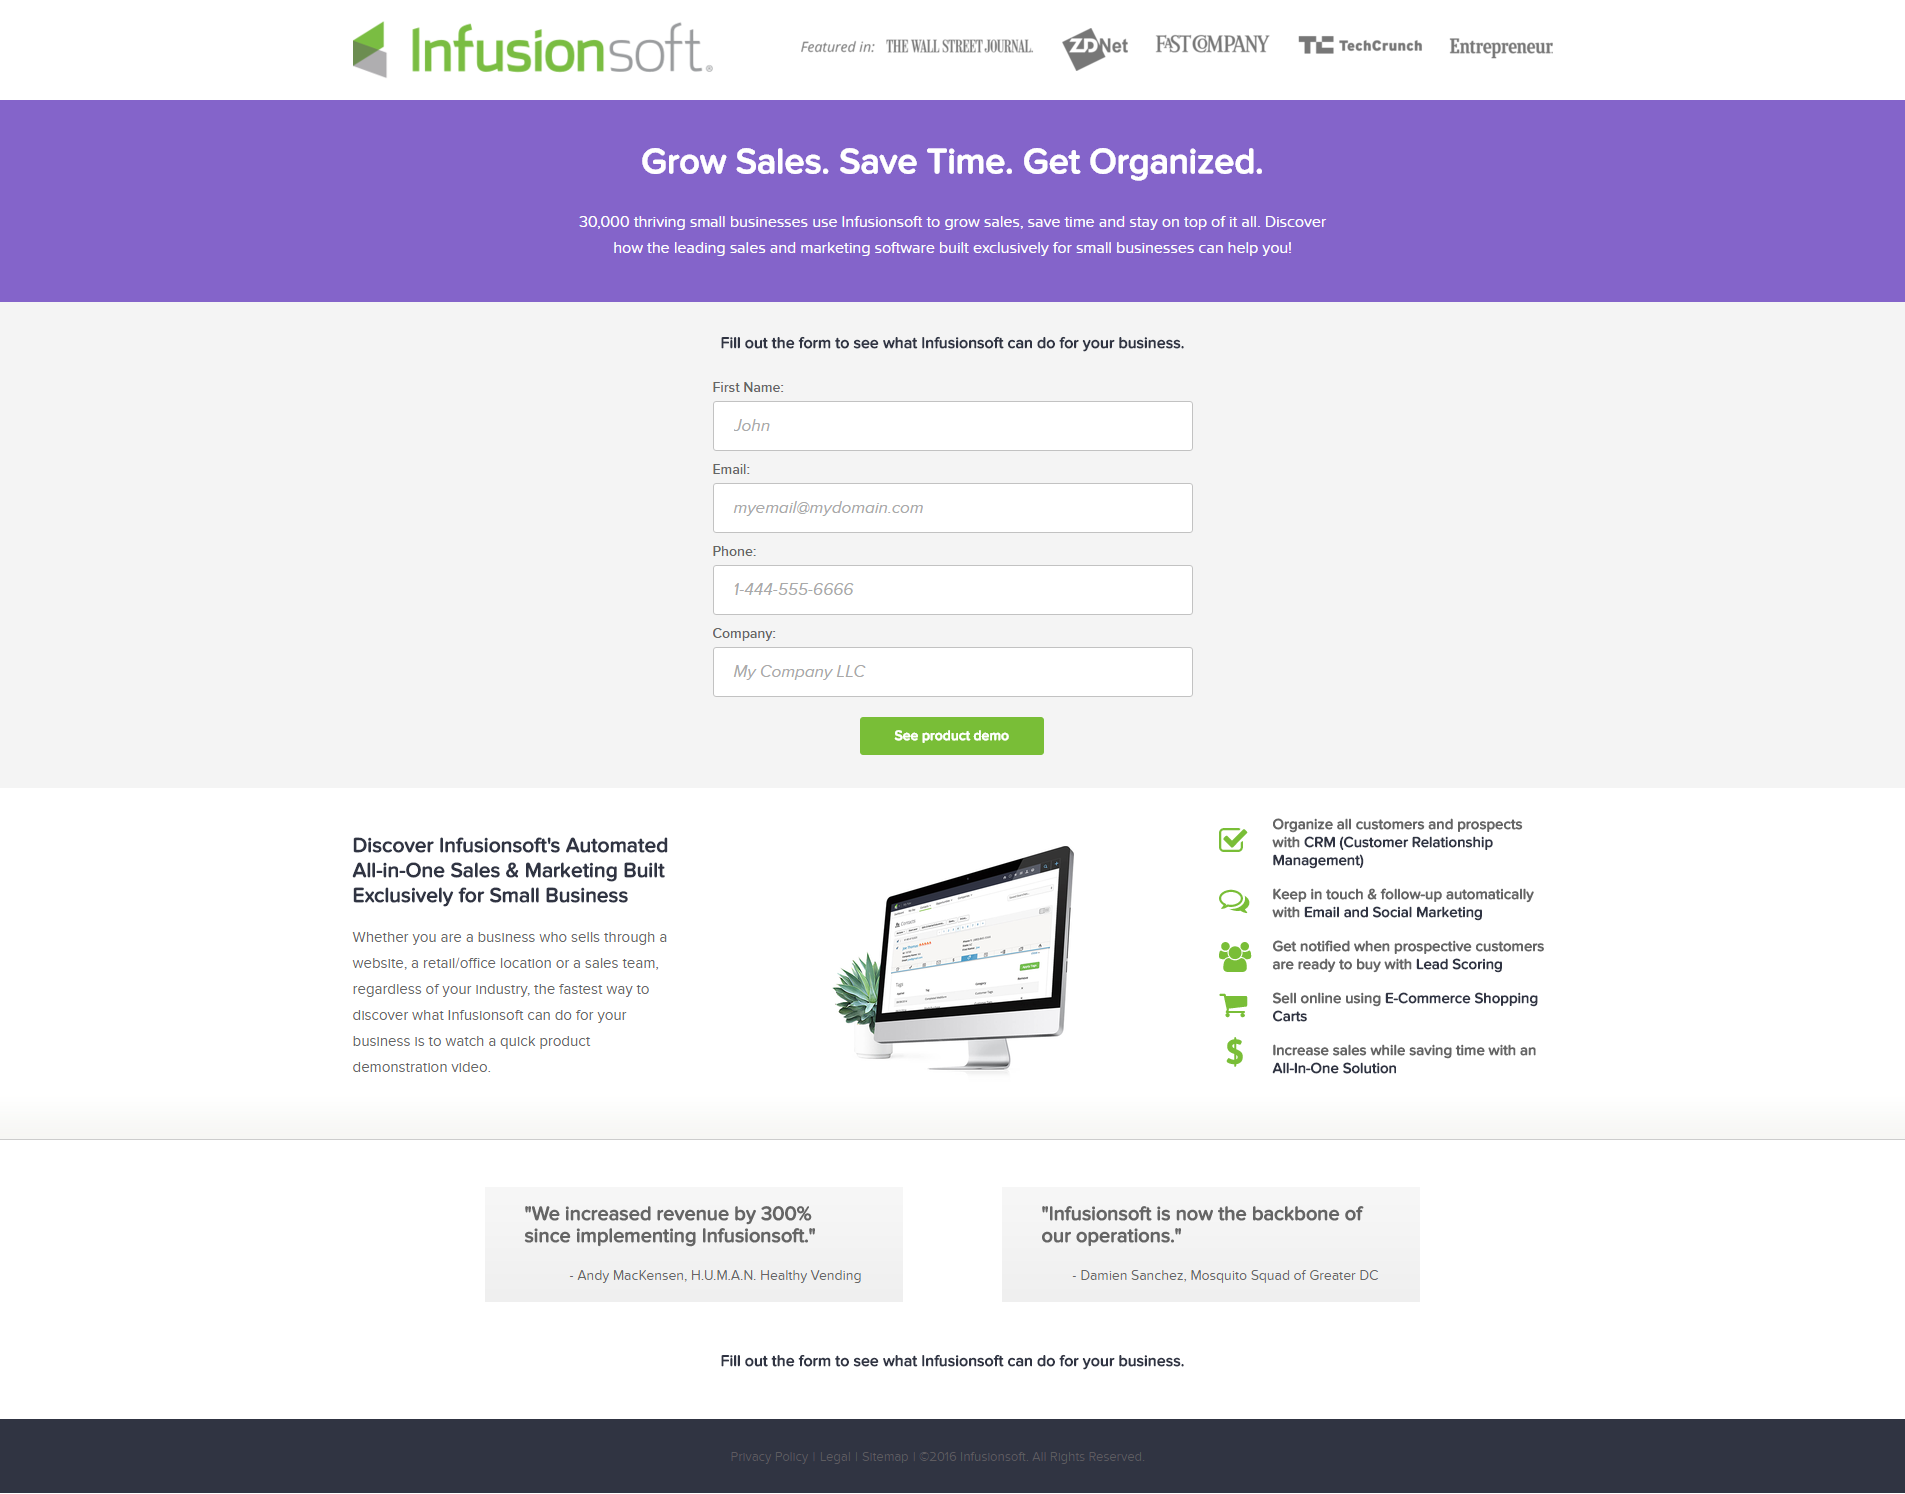 Infusionsoft landing page design